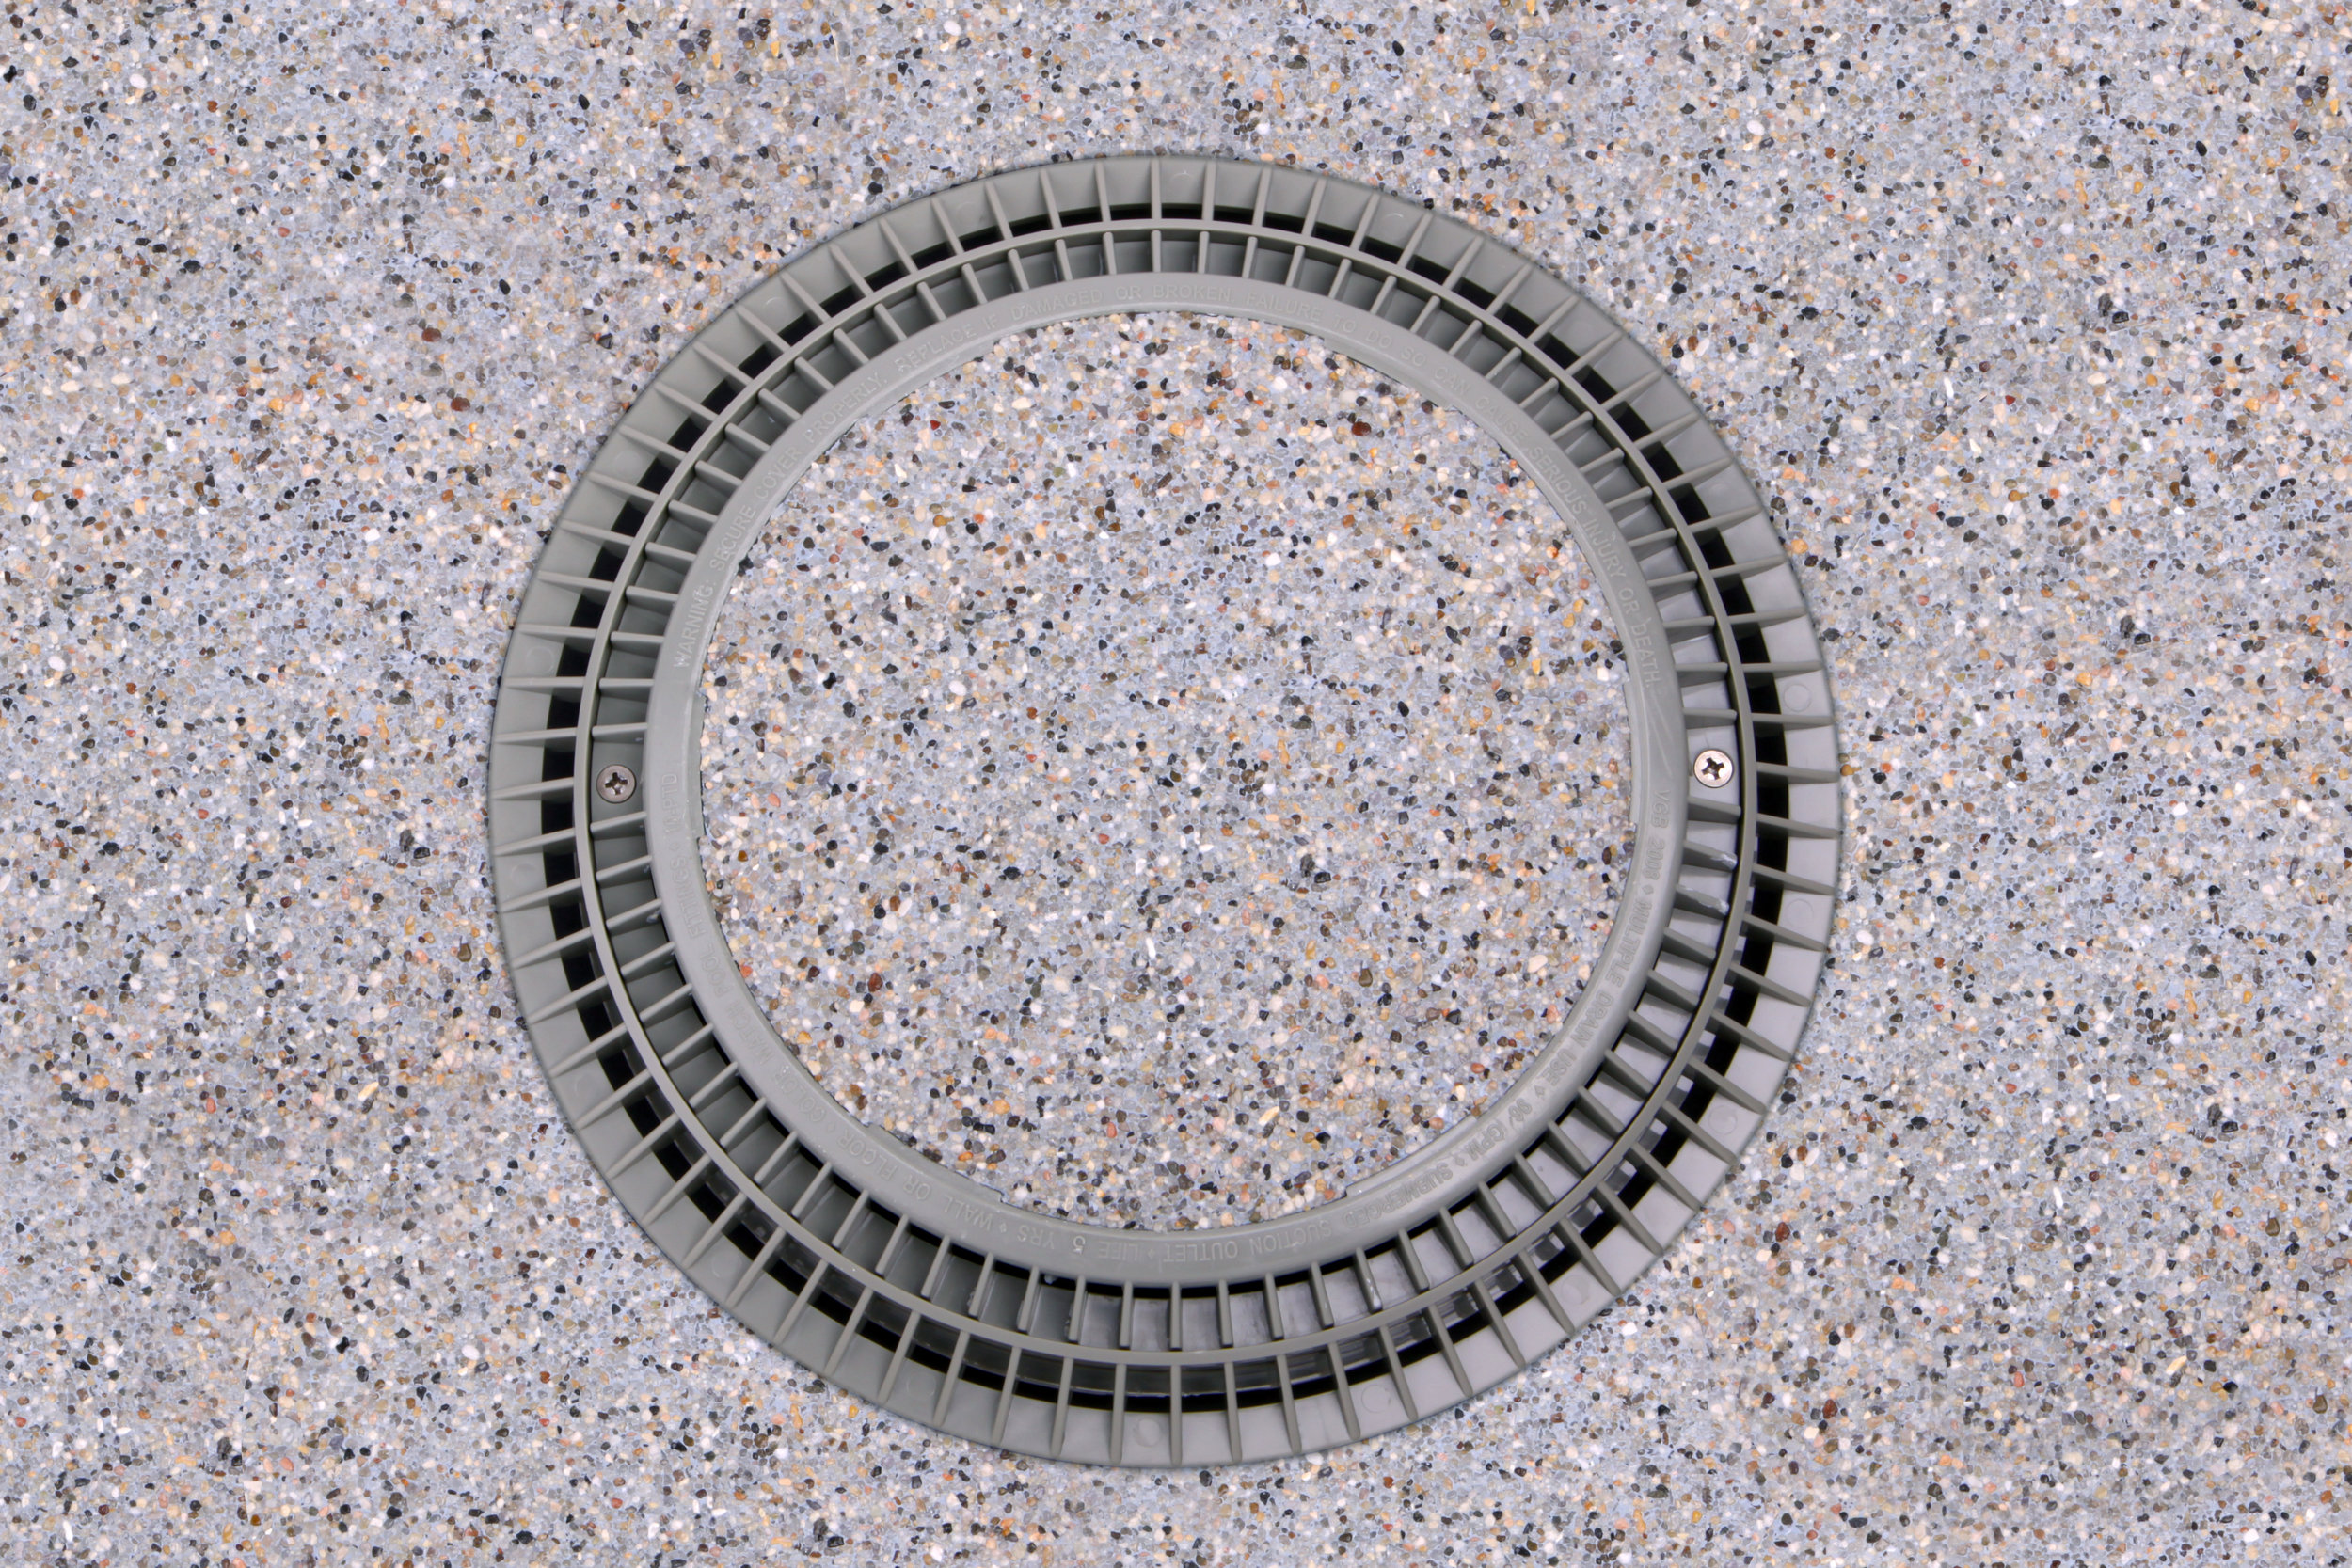 Pebble Top Drain Cover filled